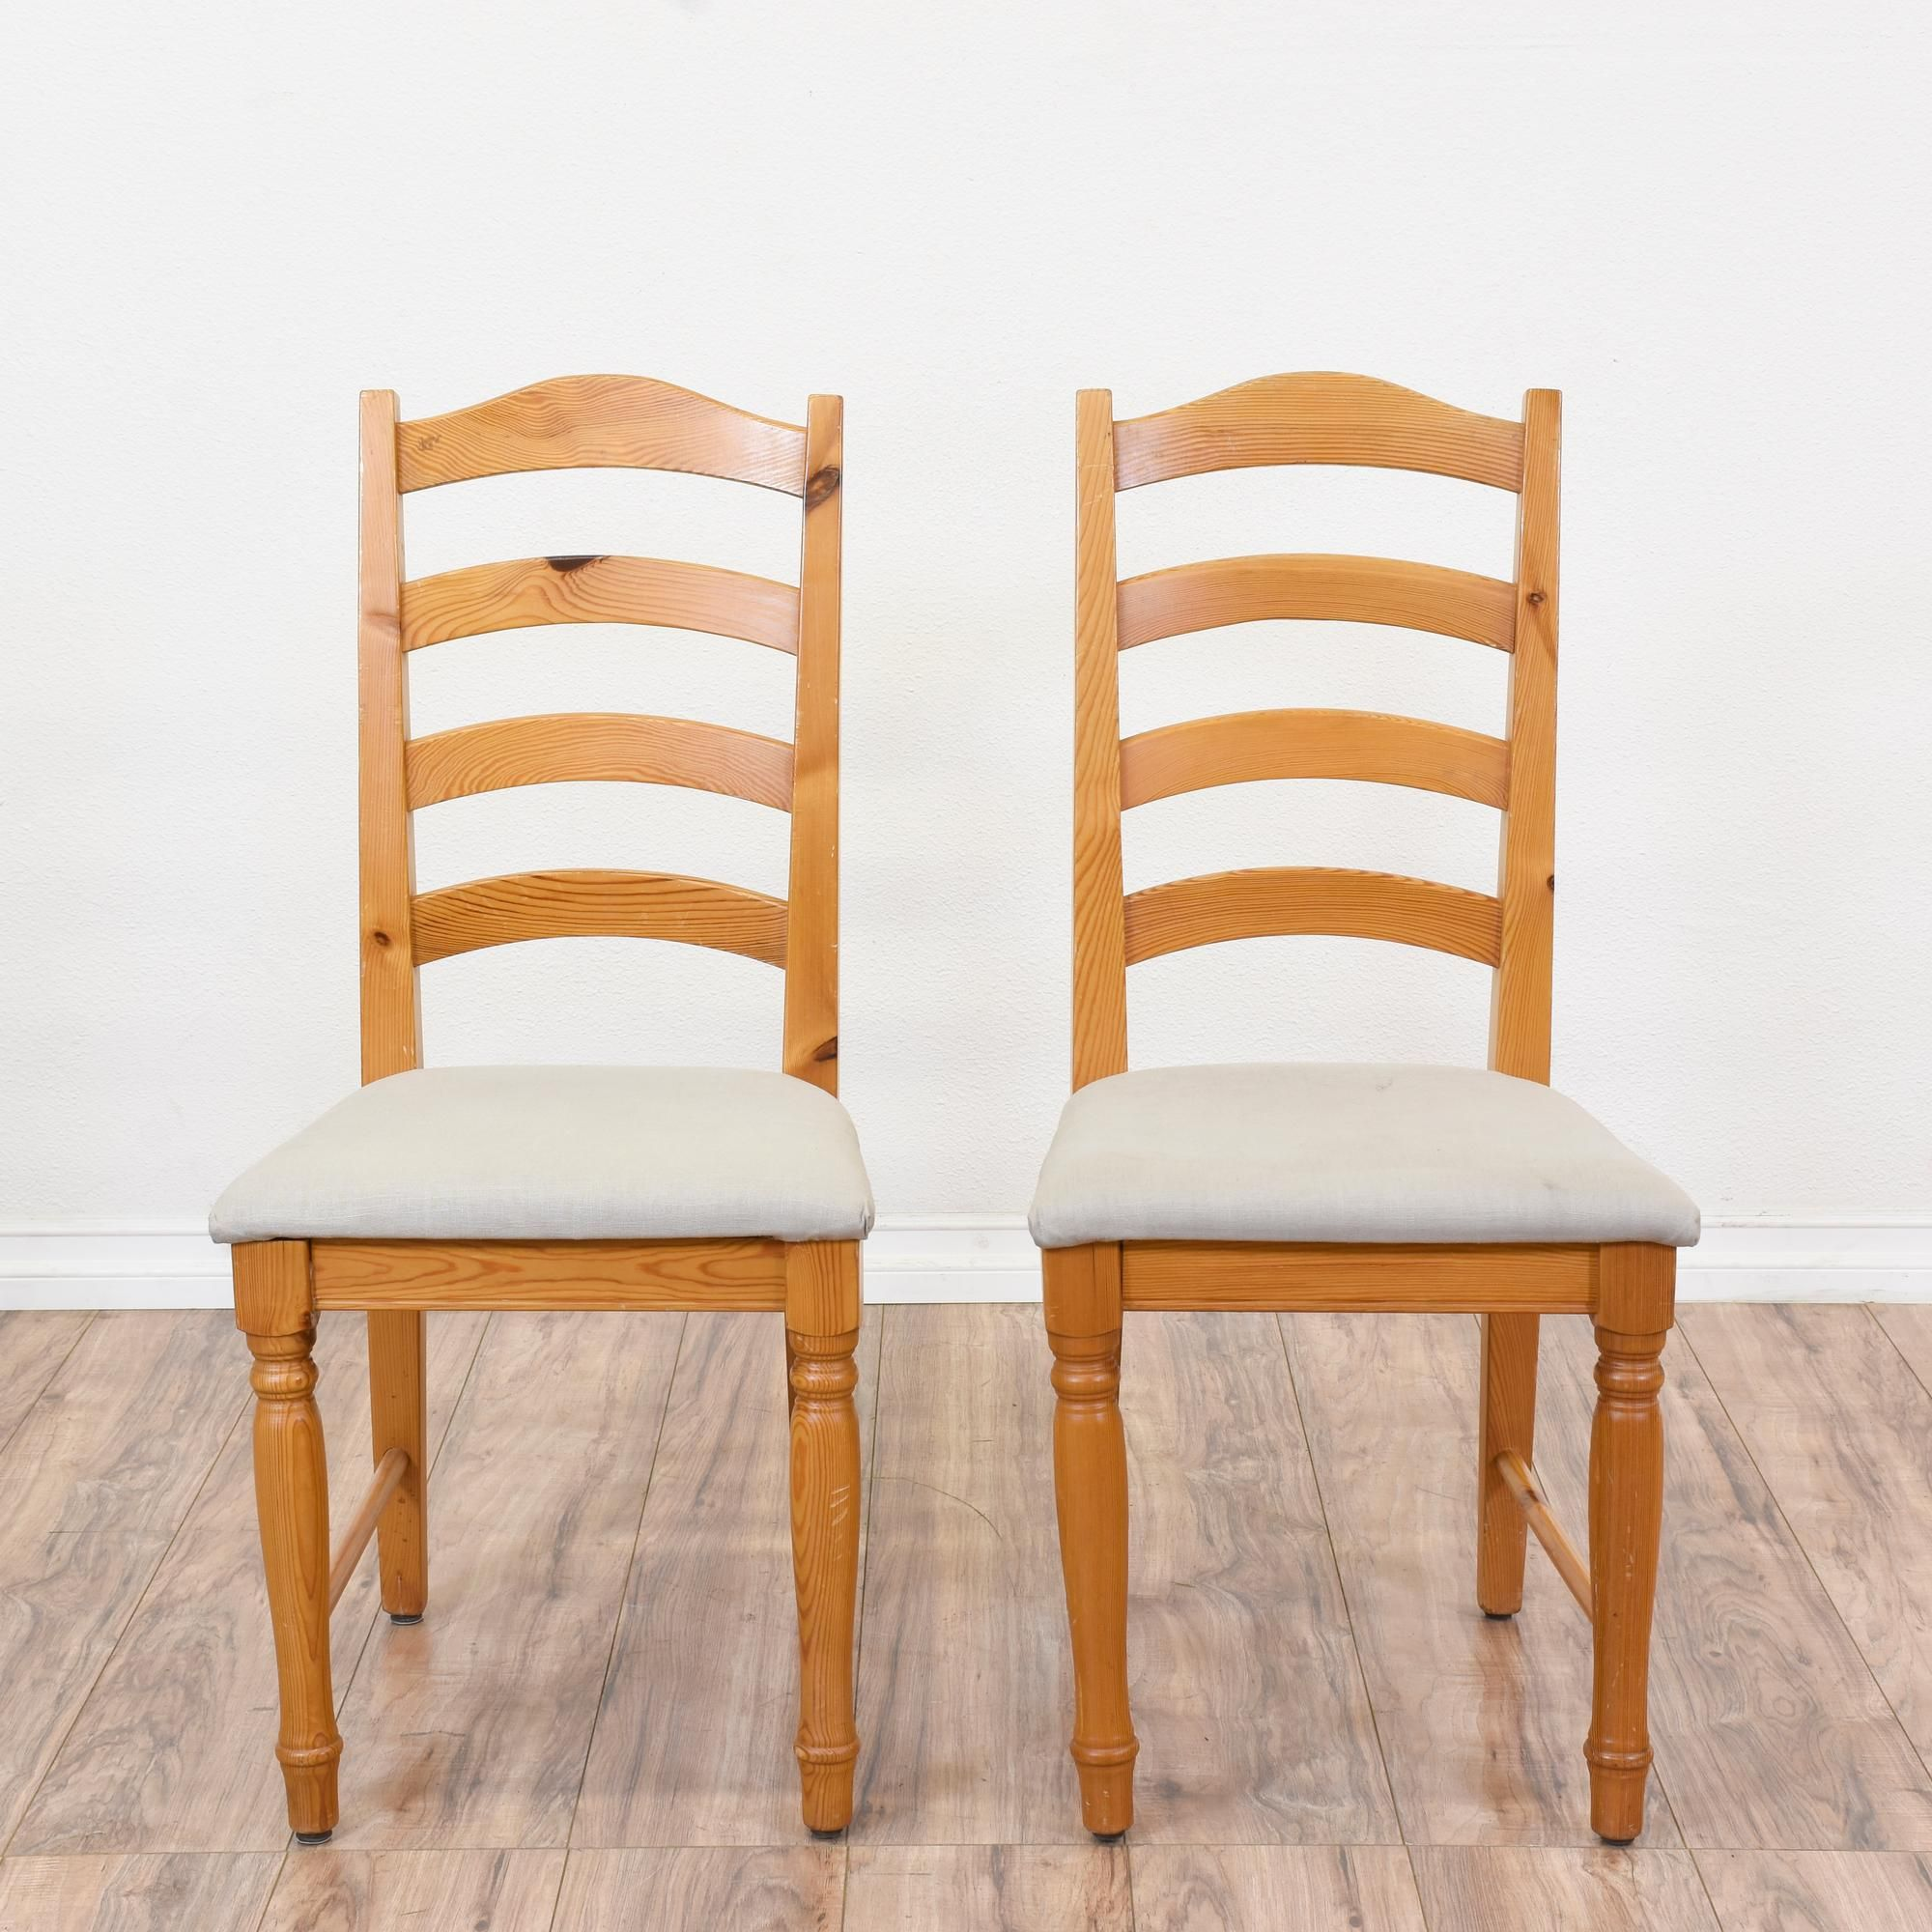 This Pair Of Ladder Back Chairs Are Featured In A Solid Wood With A Glossy  Pine